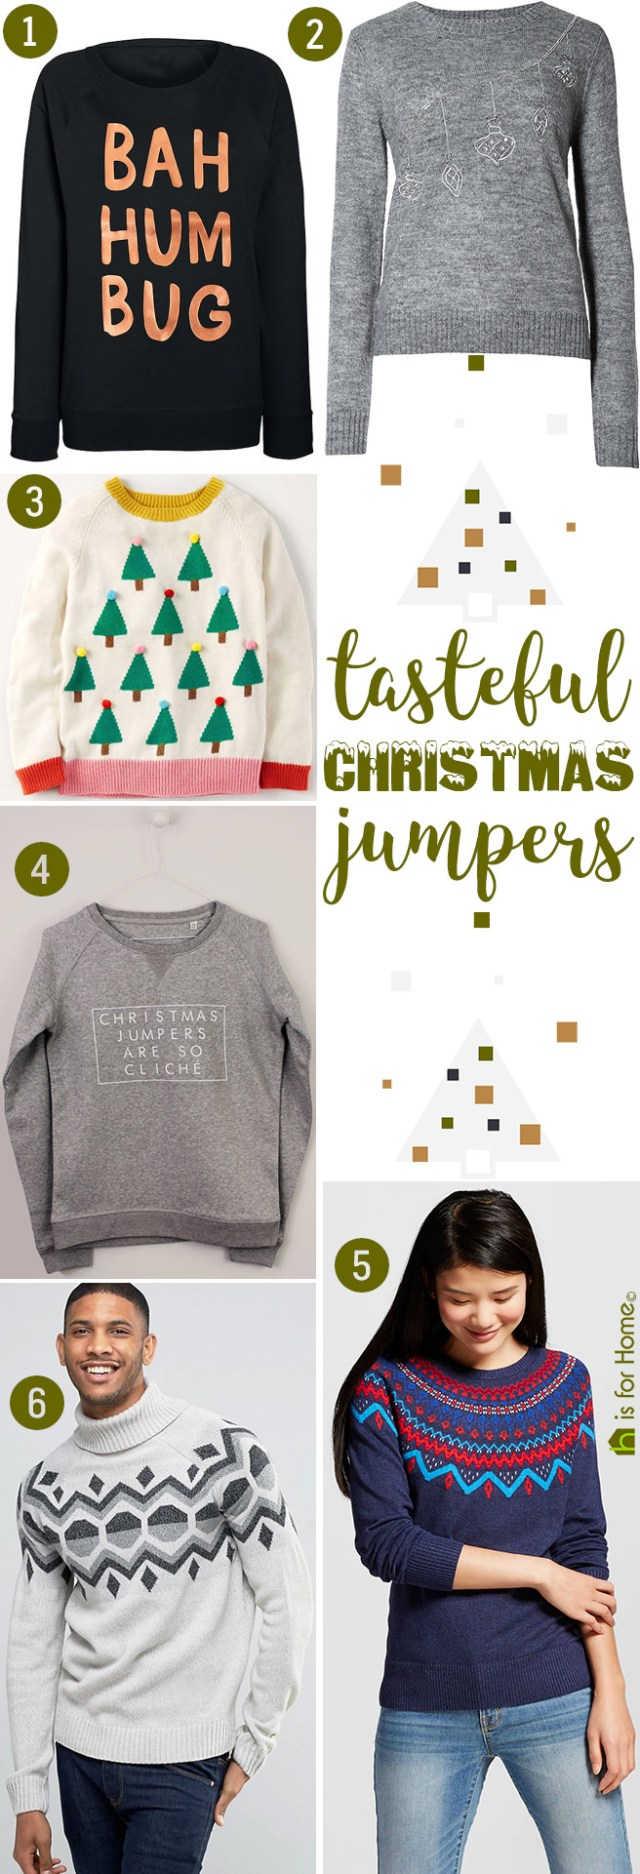 Tasteful Christmas jumpers | H is for Home